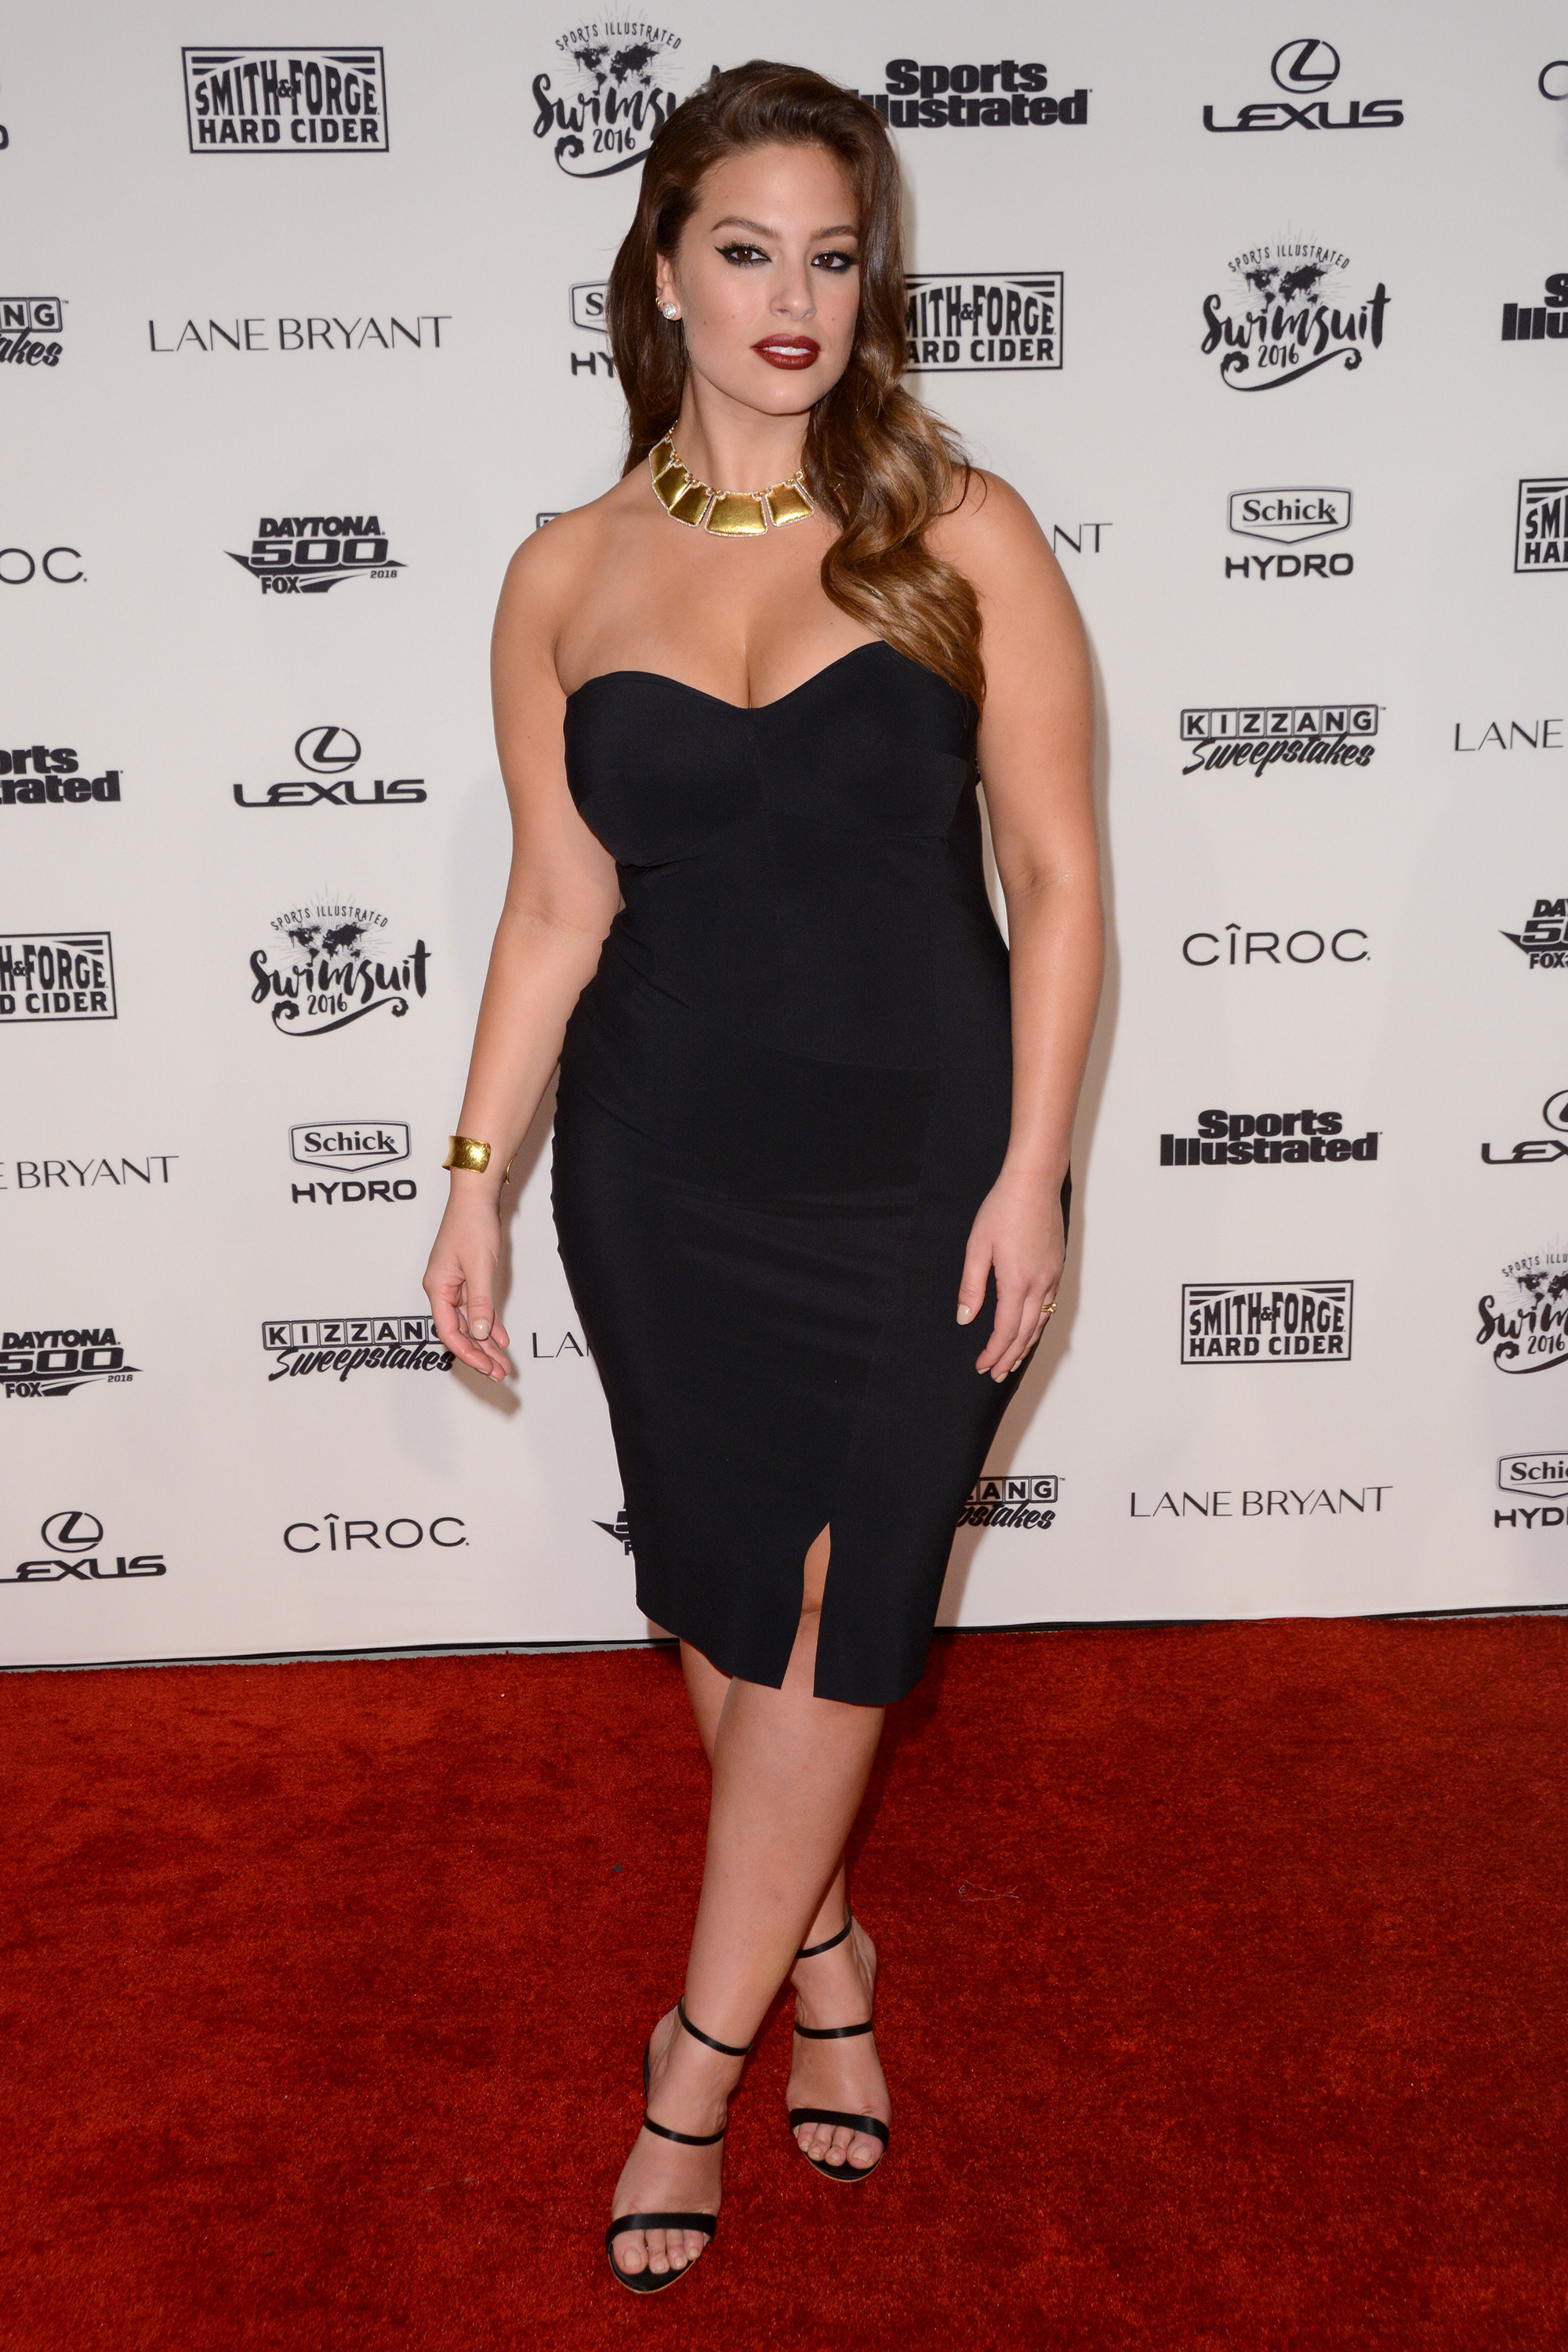 Sports Illustrated Swimsuit 2016 - Red Carpet Arrivals  Featuring: Ashley Graham Where: New York, New York, United States When: 17 Feb 2016 Credit: Ivan Nikolov/WENN.com